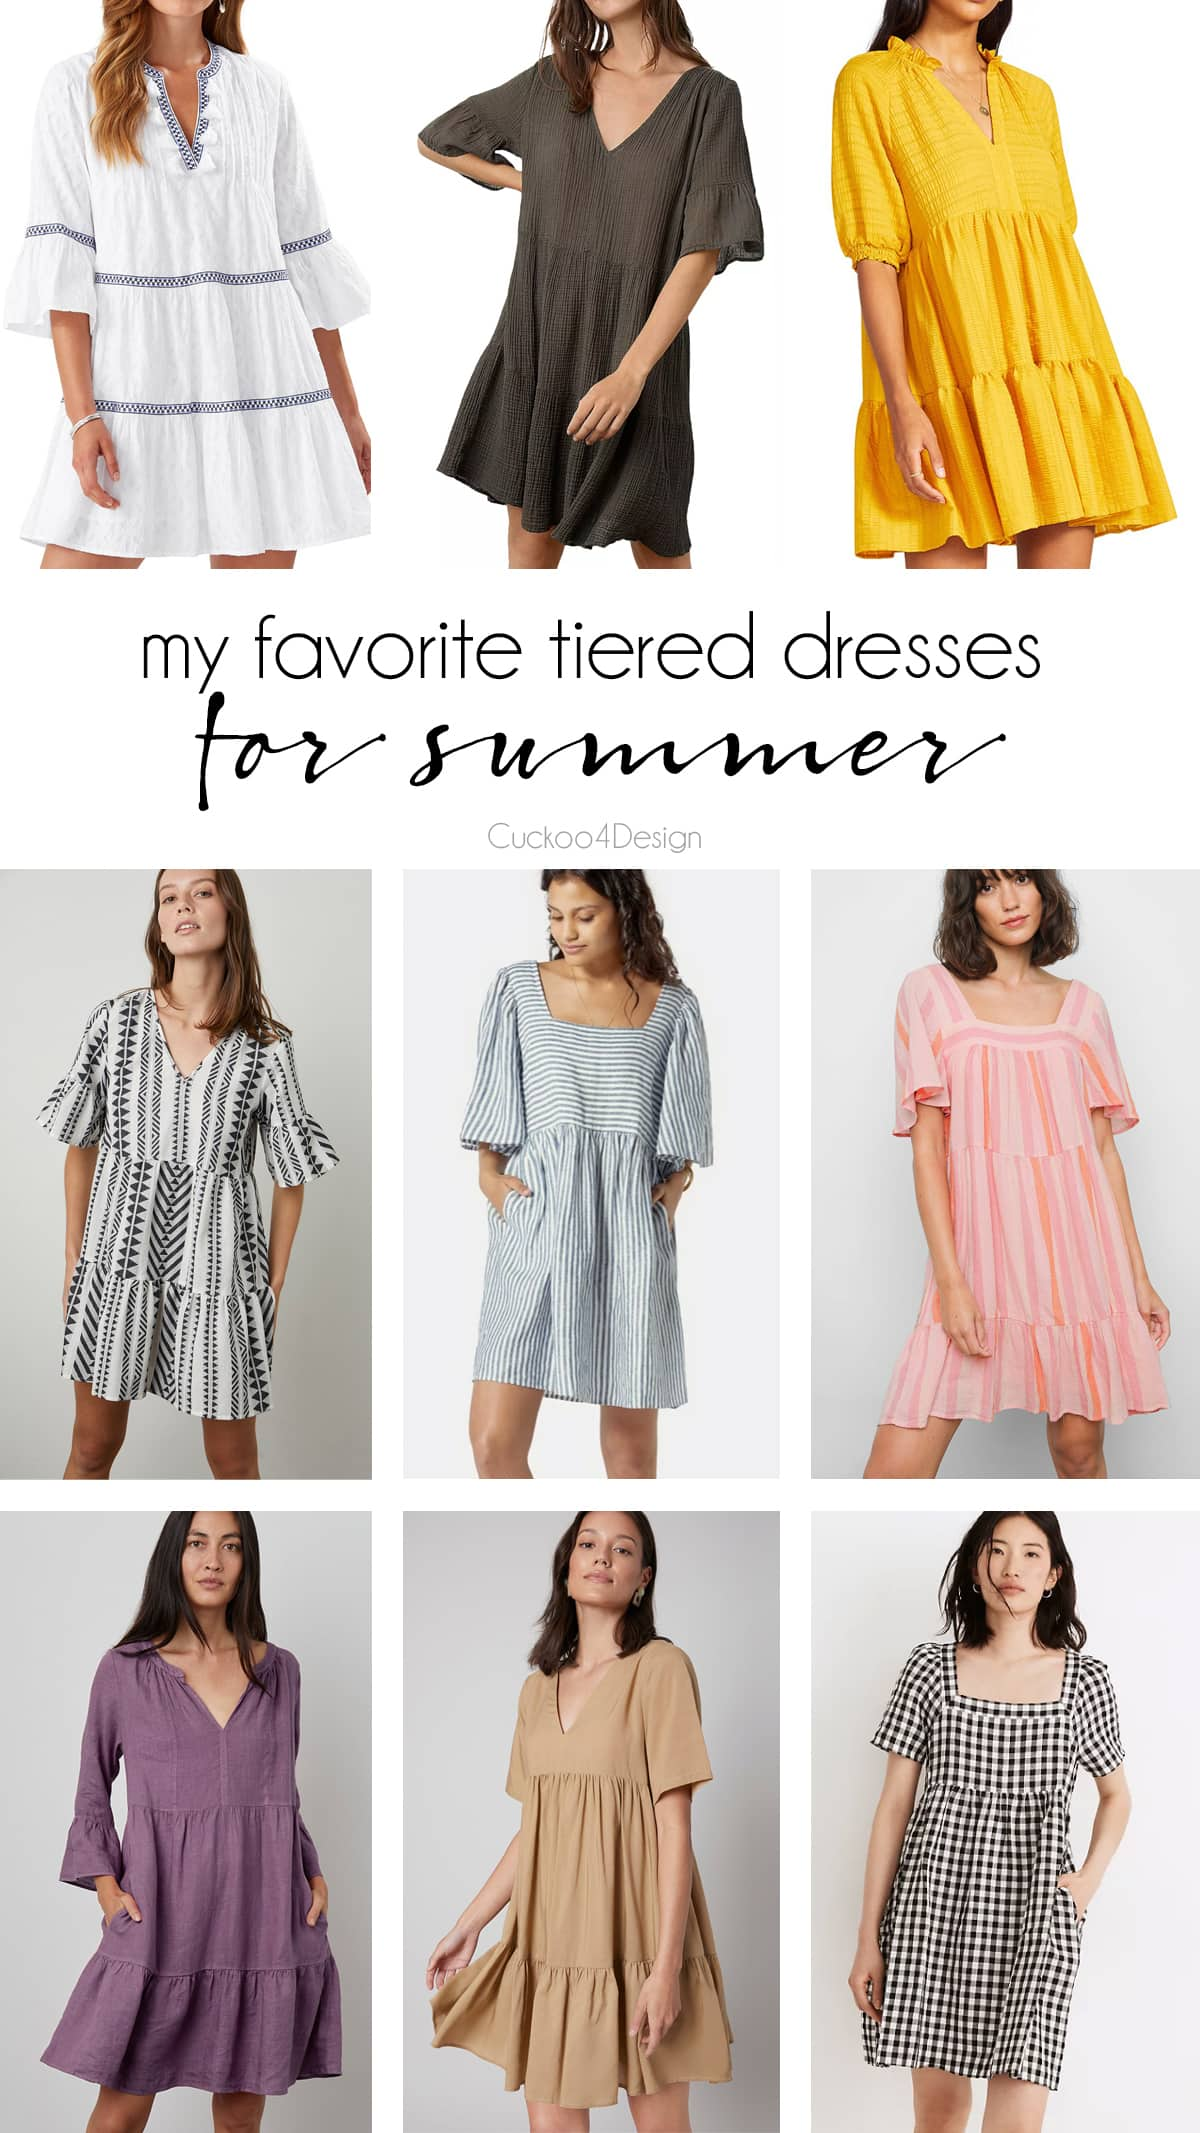 my favorite tired dresses with sleeves